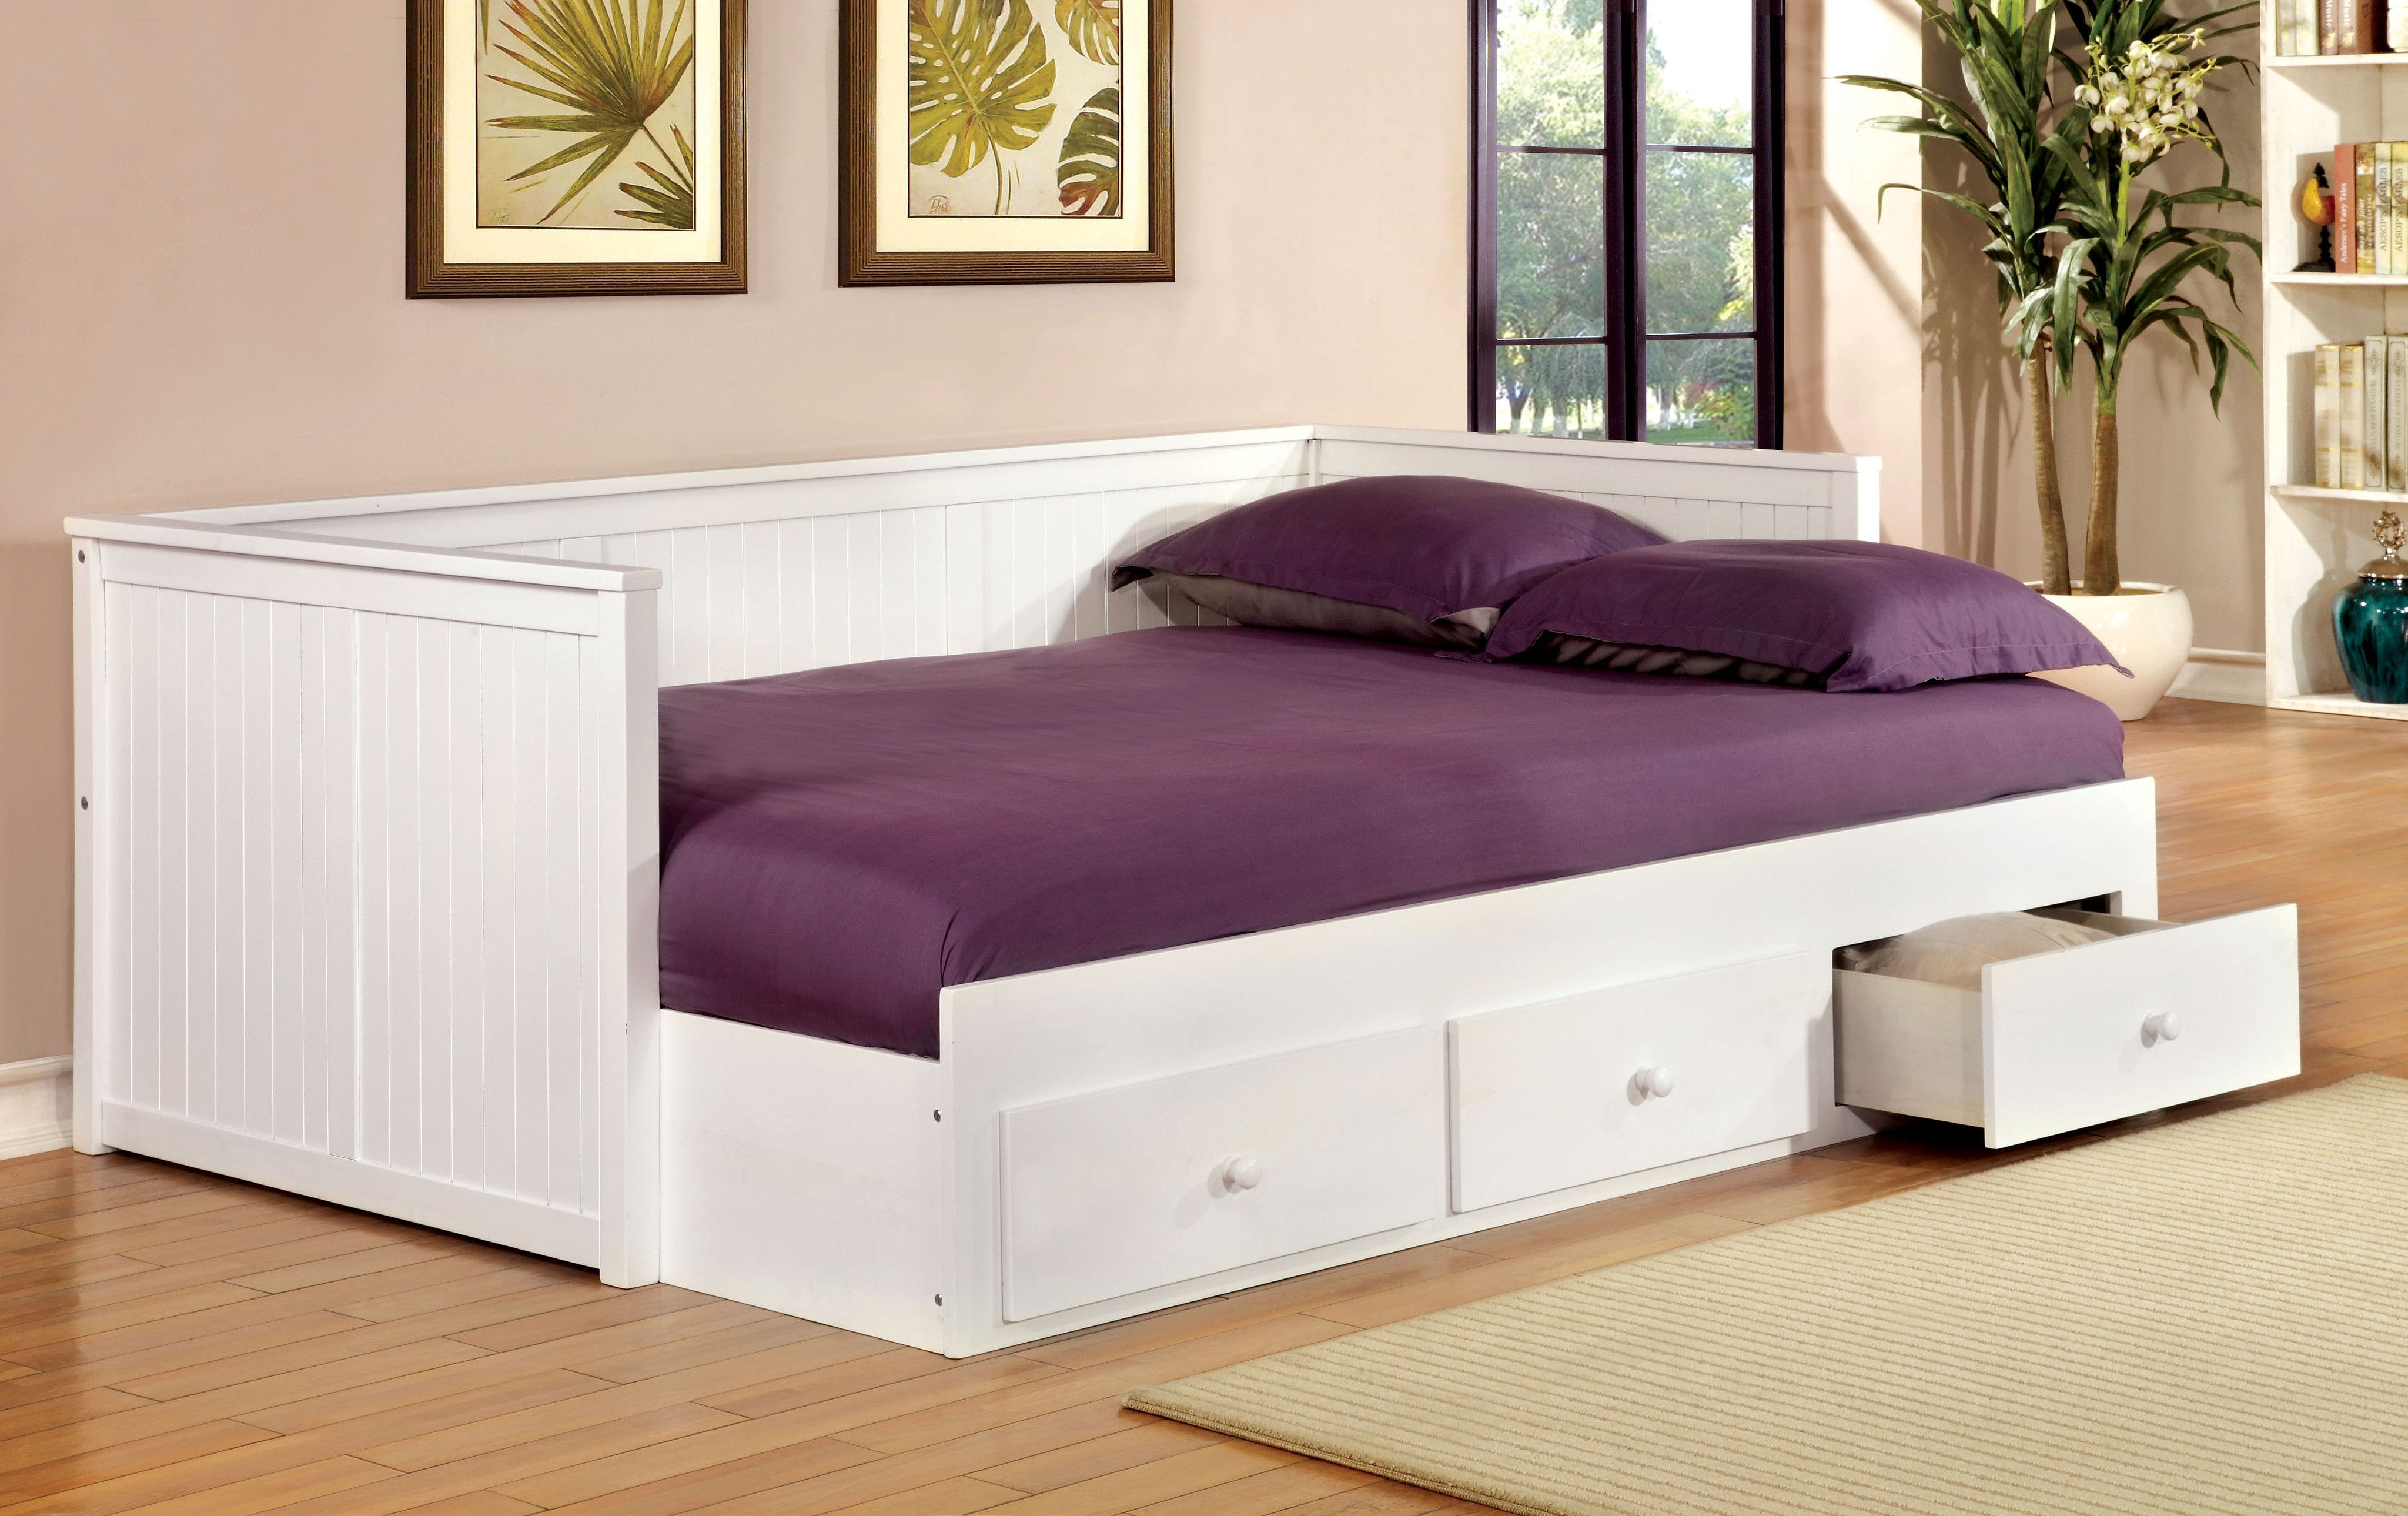 in beds drawers cherry at size bed twin including bedroom pictures with of daybed awesome white drawer wood storage platform